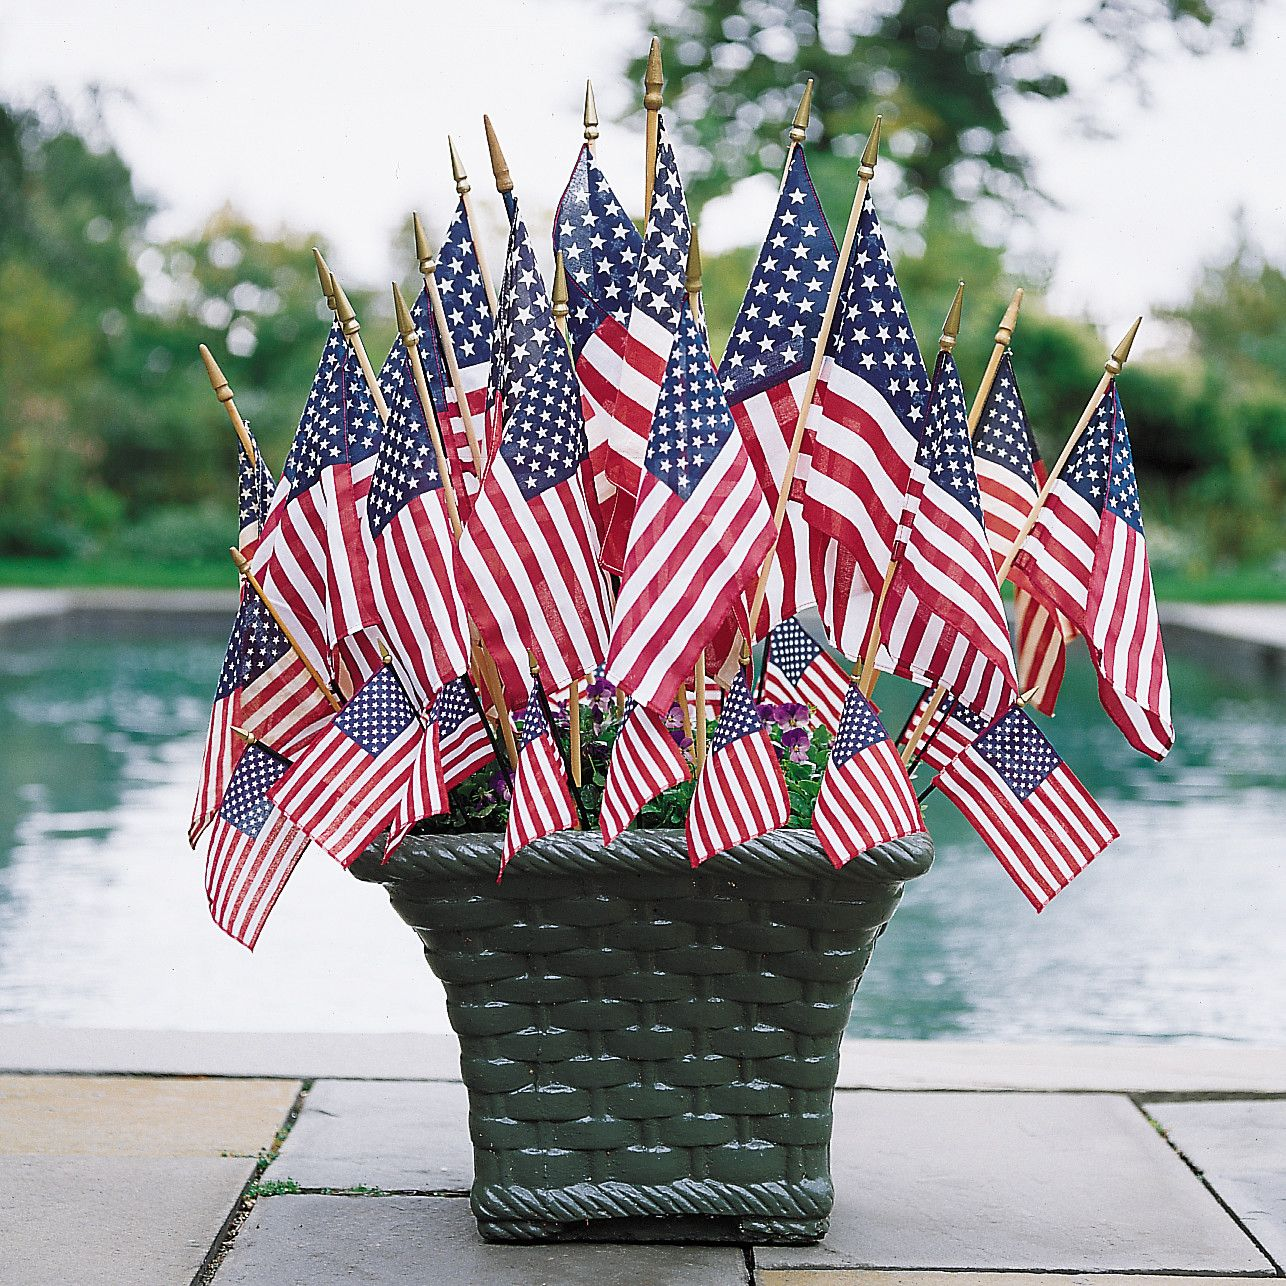 15 Creative Ways To Display The American Flag Around Your Home 4th Of July Decorations Displaying The American Flag Flag Display